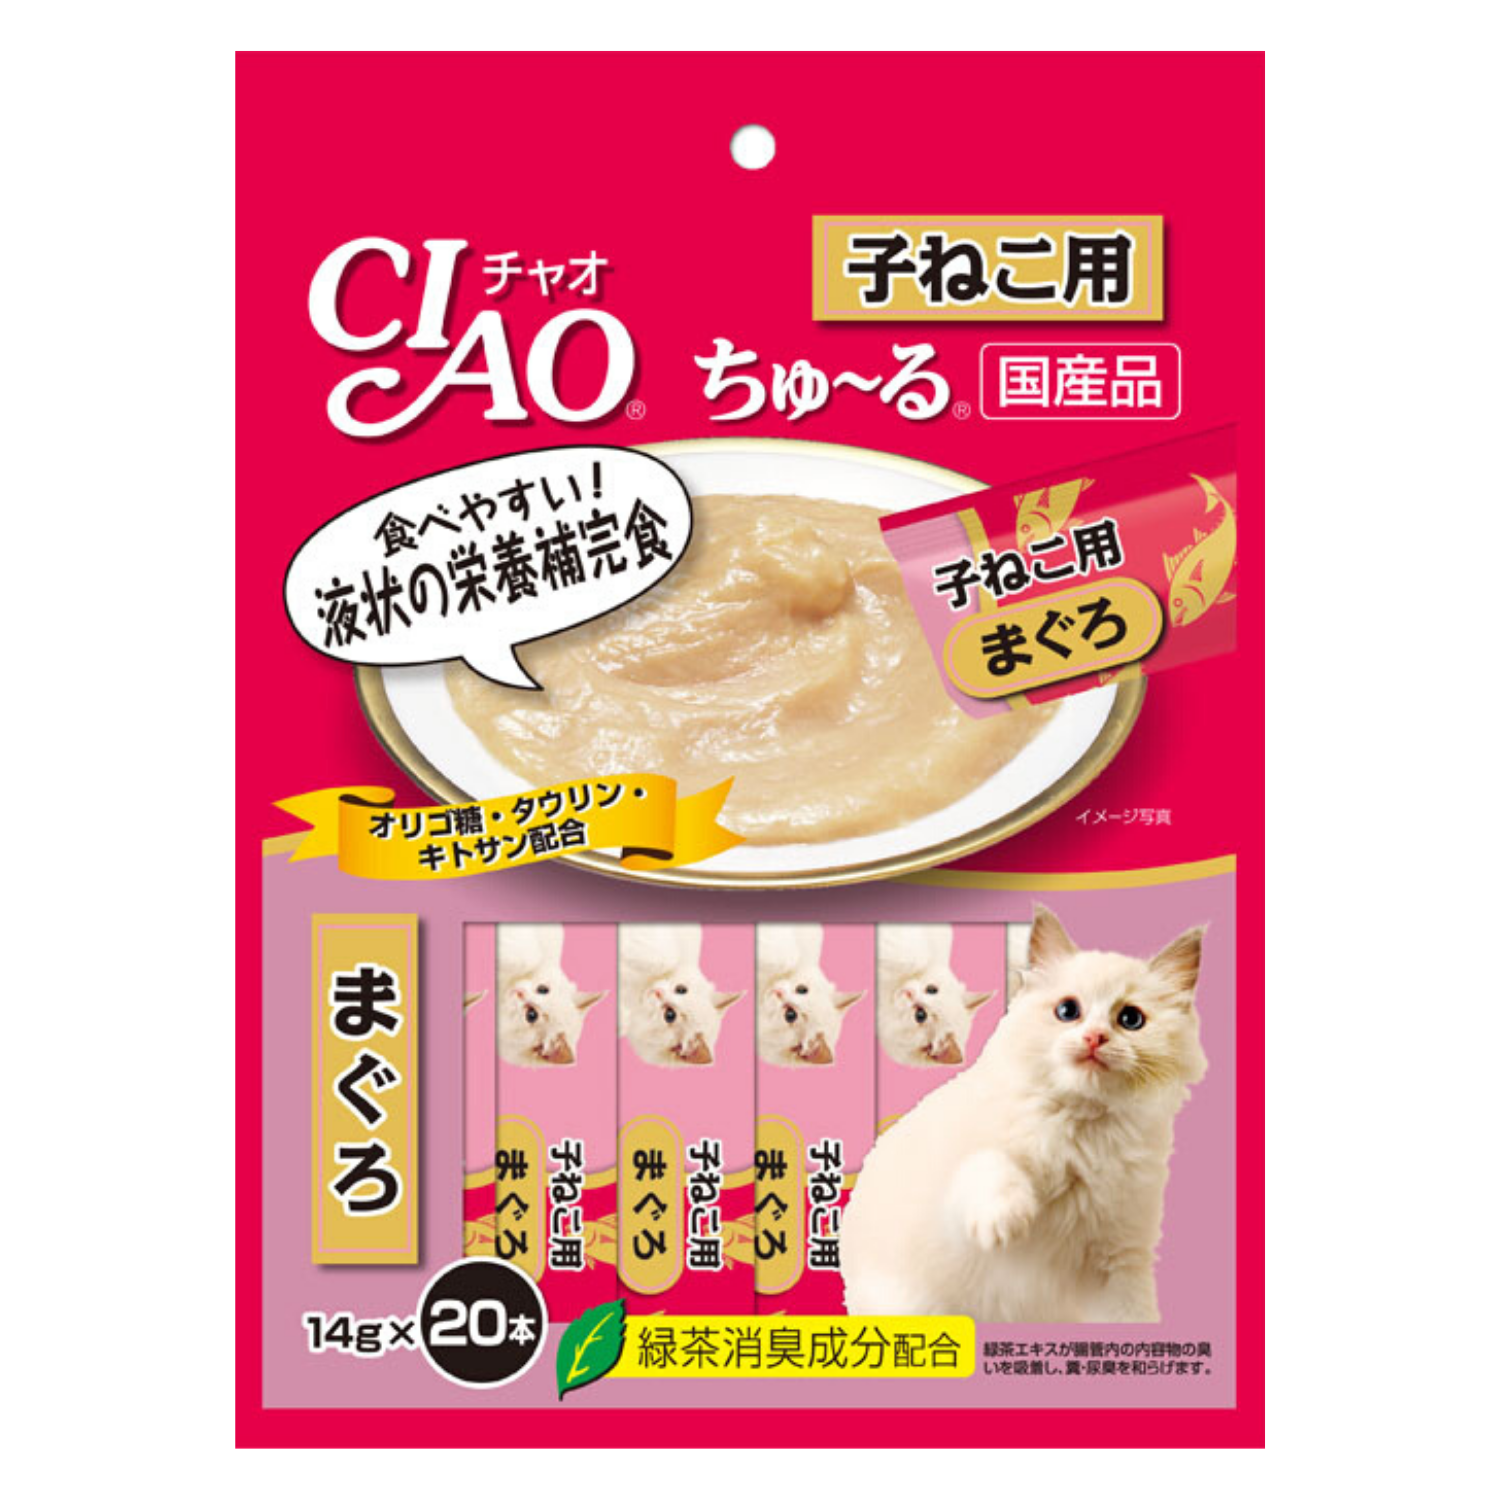 Ciao Churu Pack of 20 Tuna for Kitten - 14g x 20